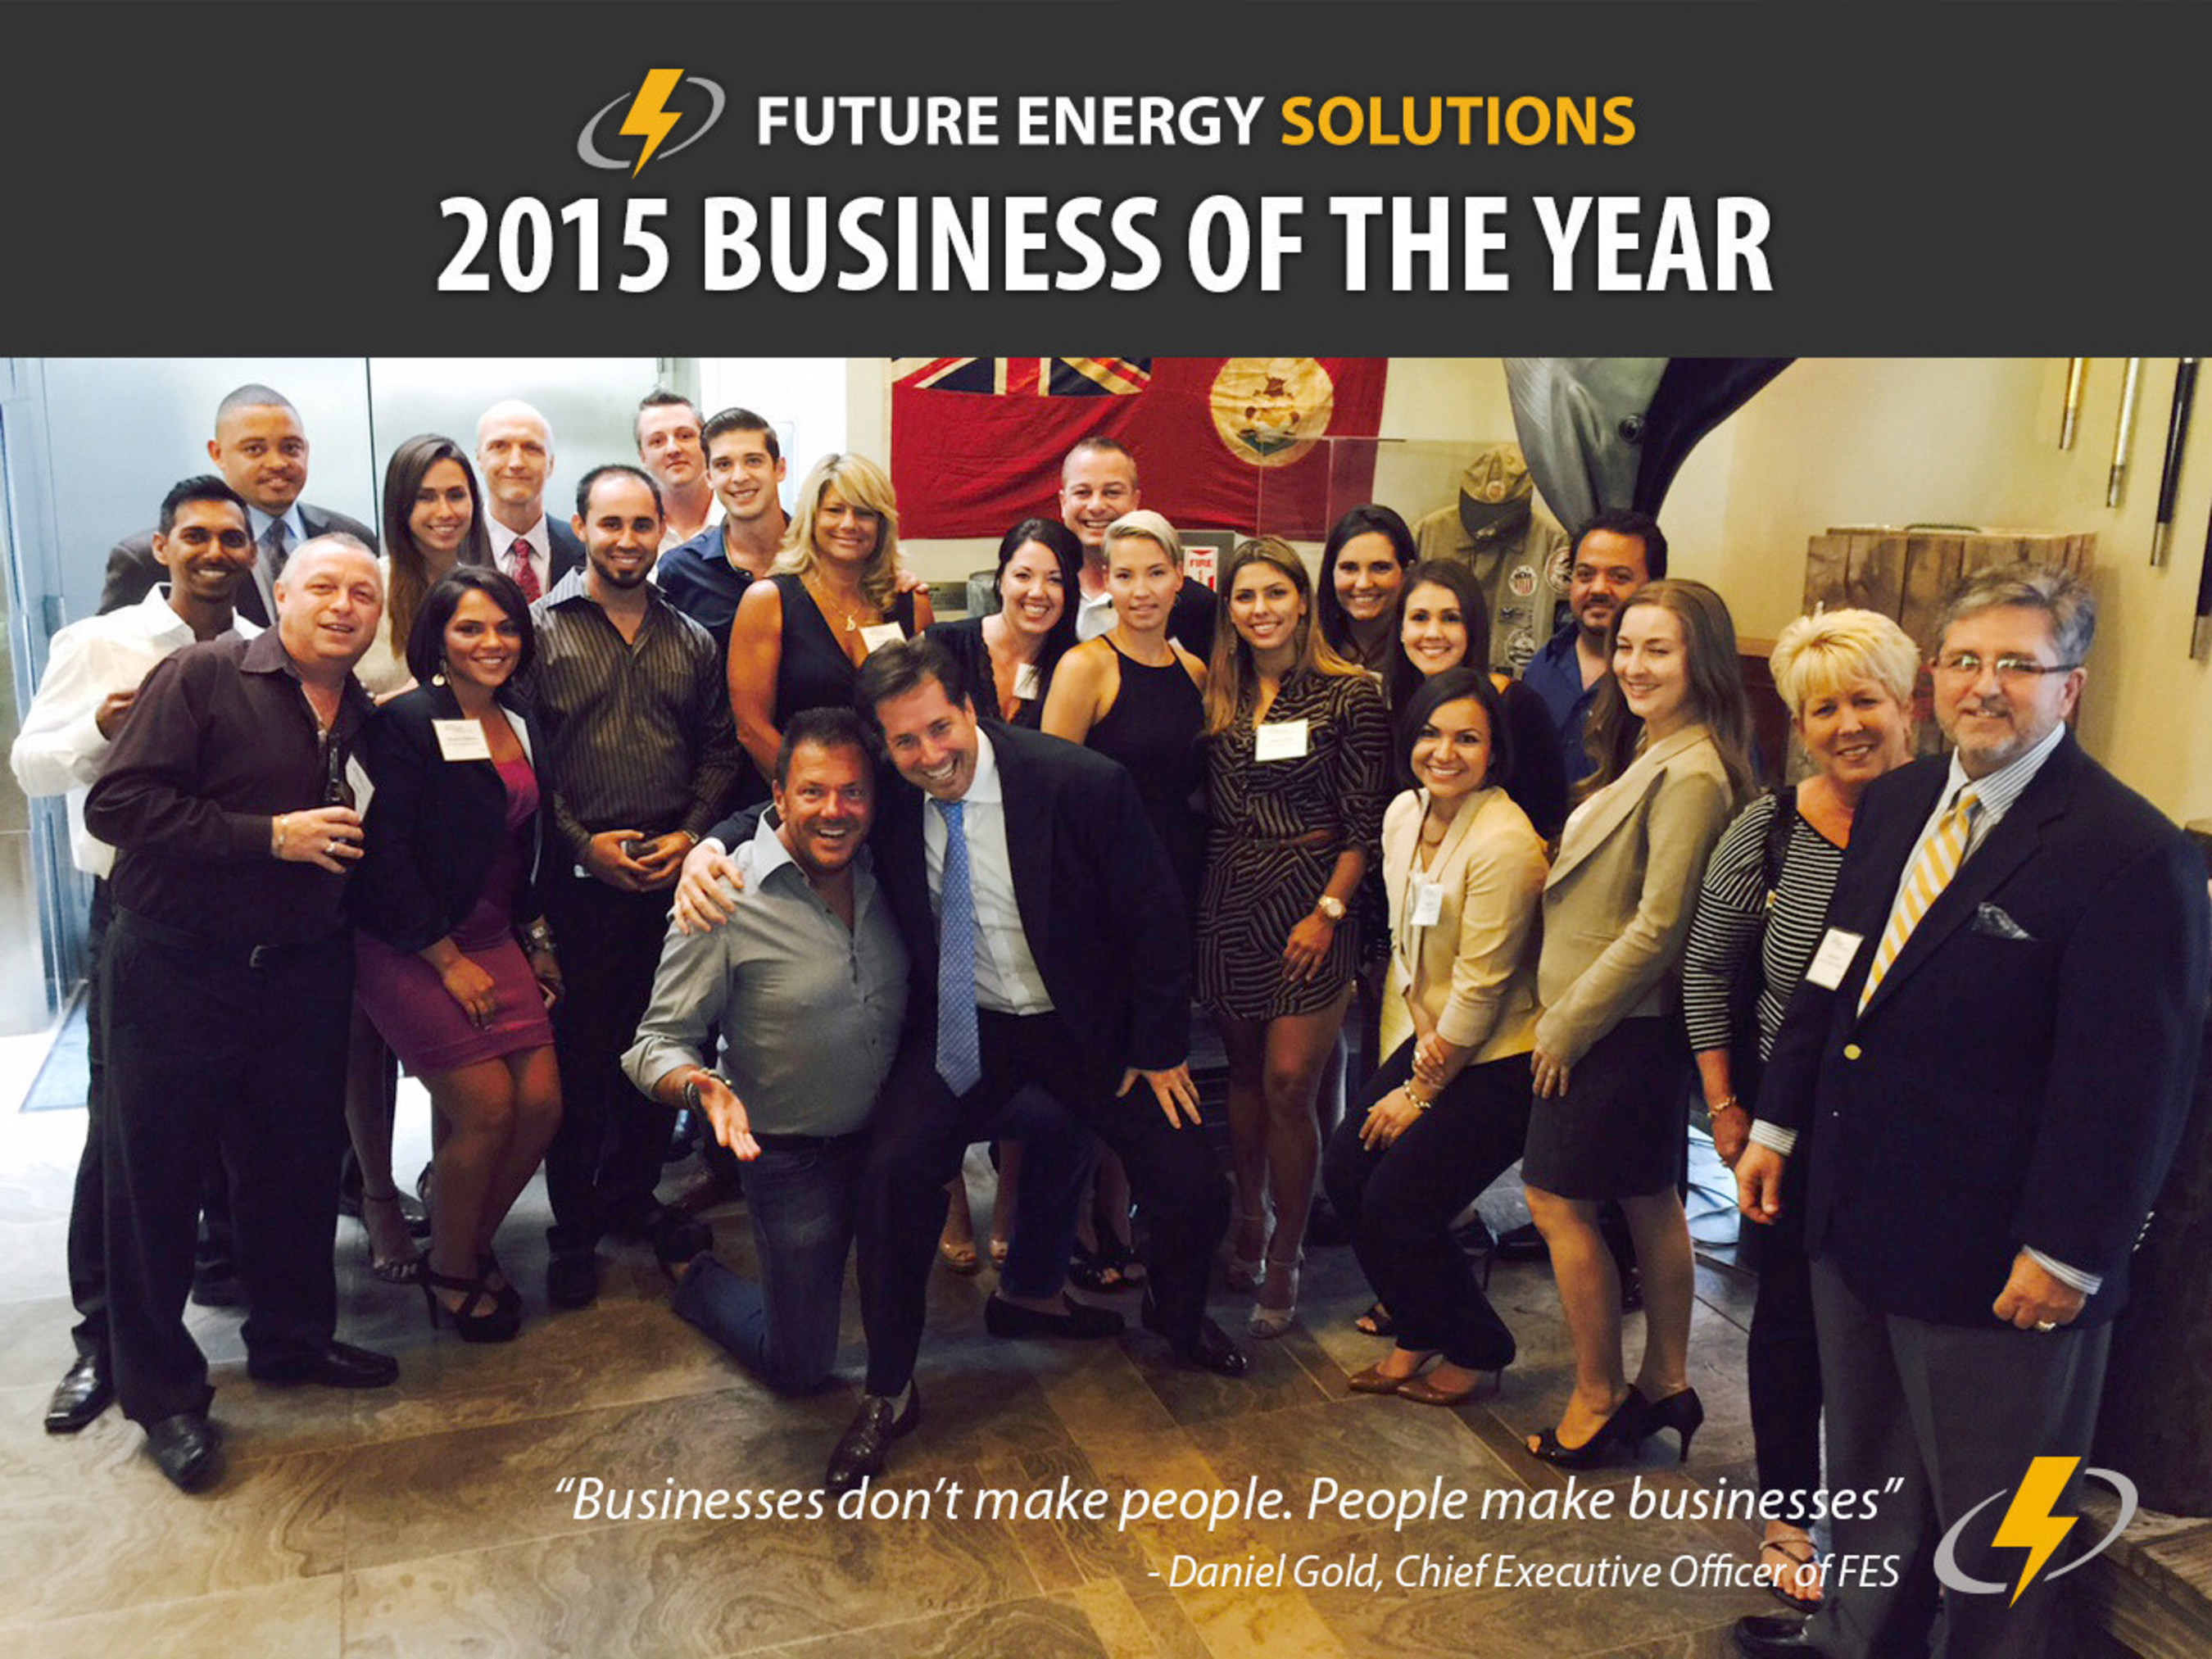 Future Energy Solutions, 2015 Business of the Year